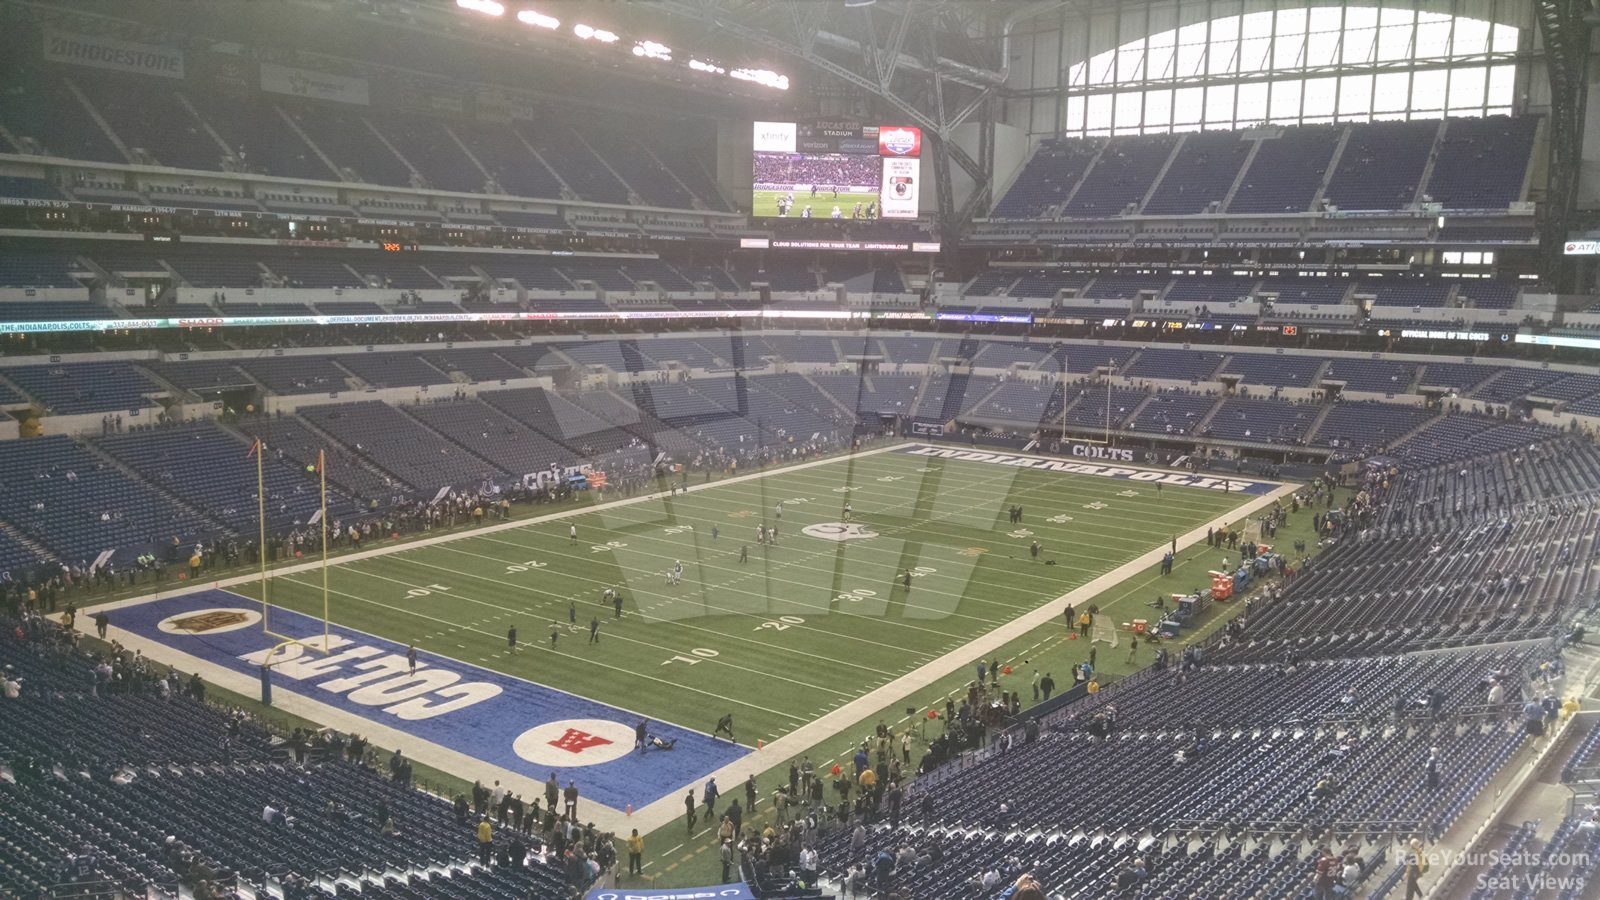 Lucas Oil Stadium Seating Chart Rows Big Ten Football